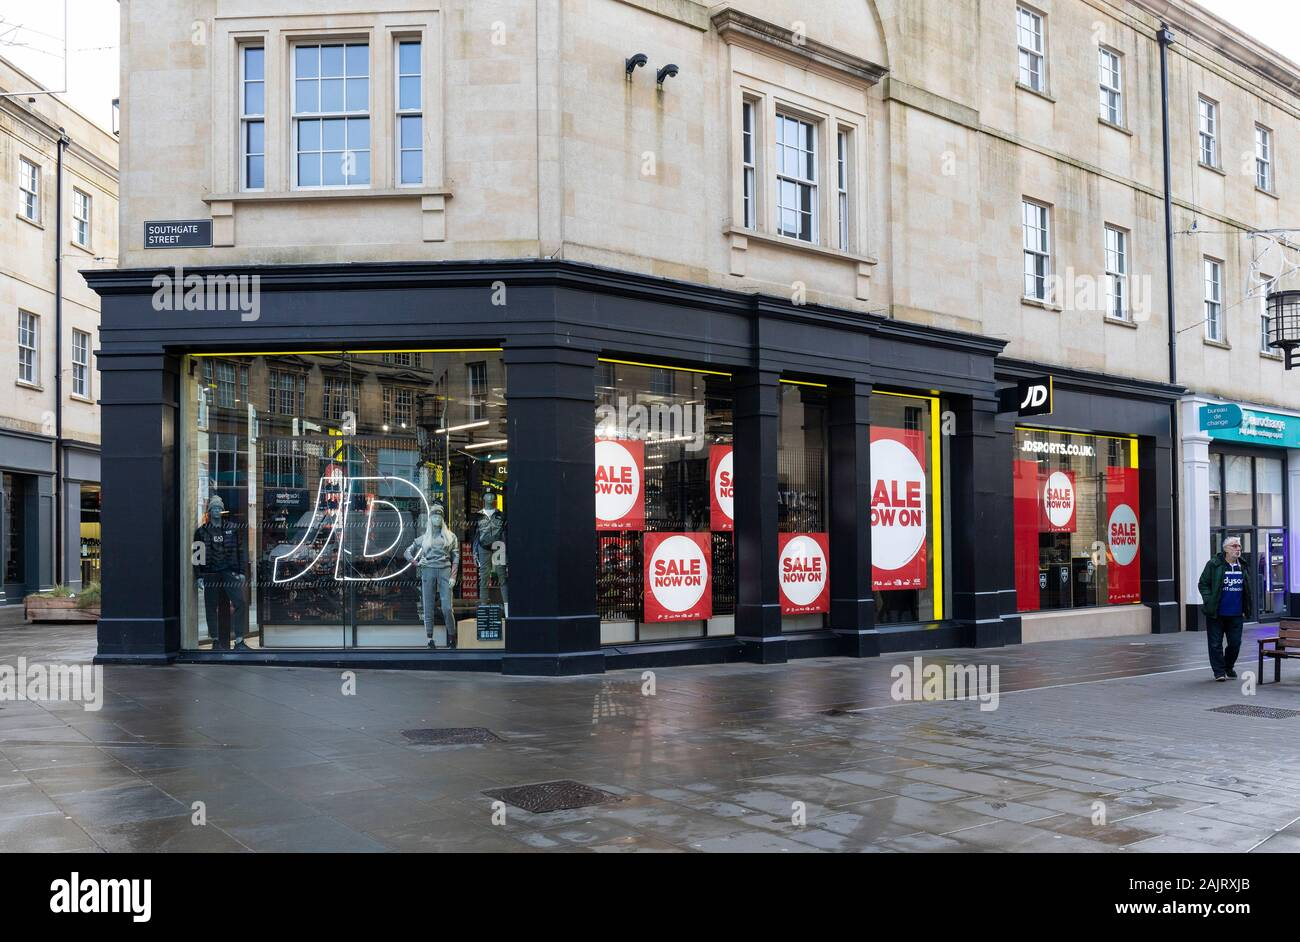 Jd Sports High Resolution Stock Photography And Images Alamy